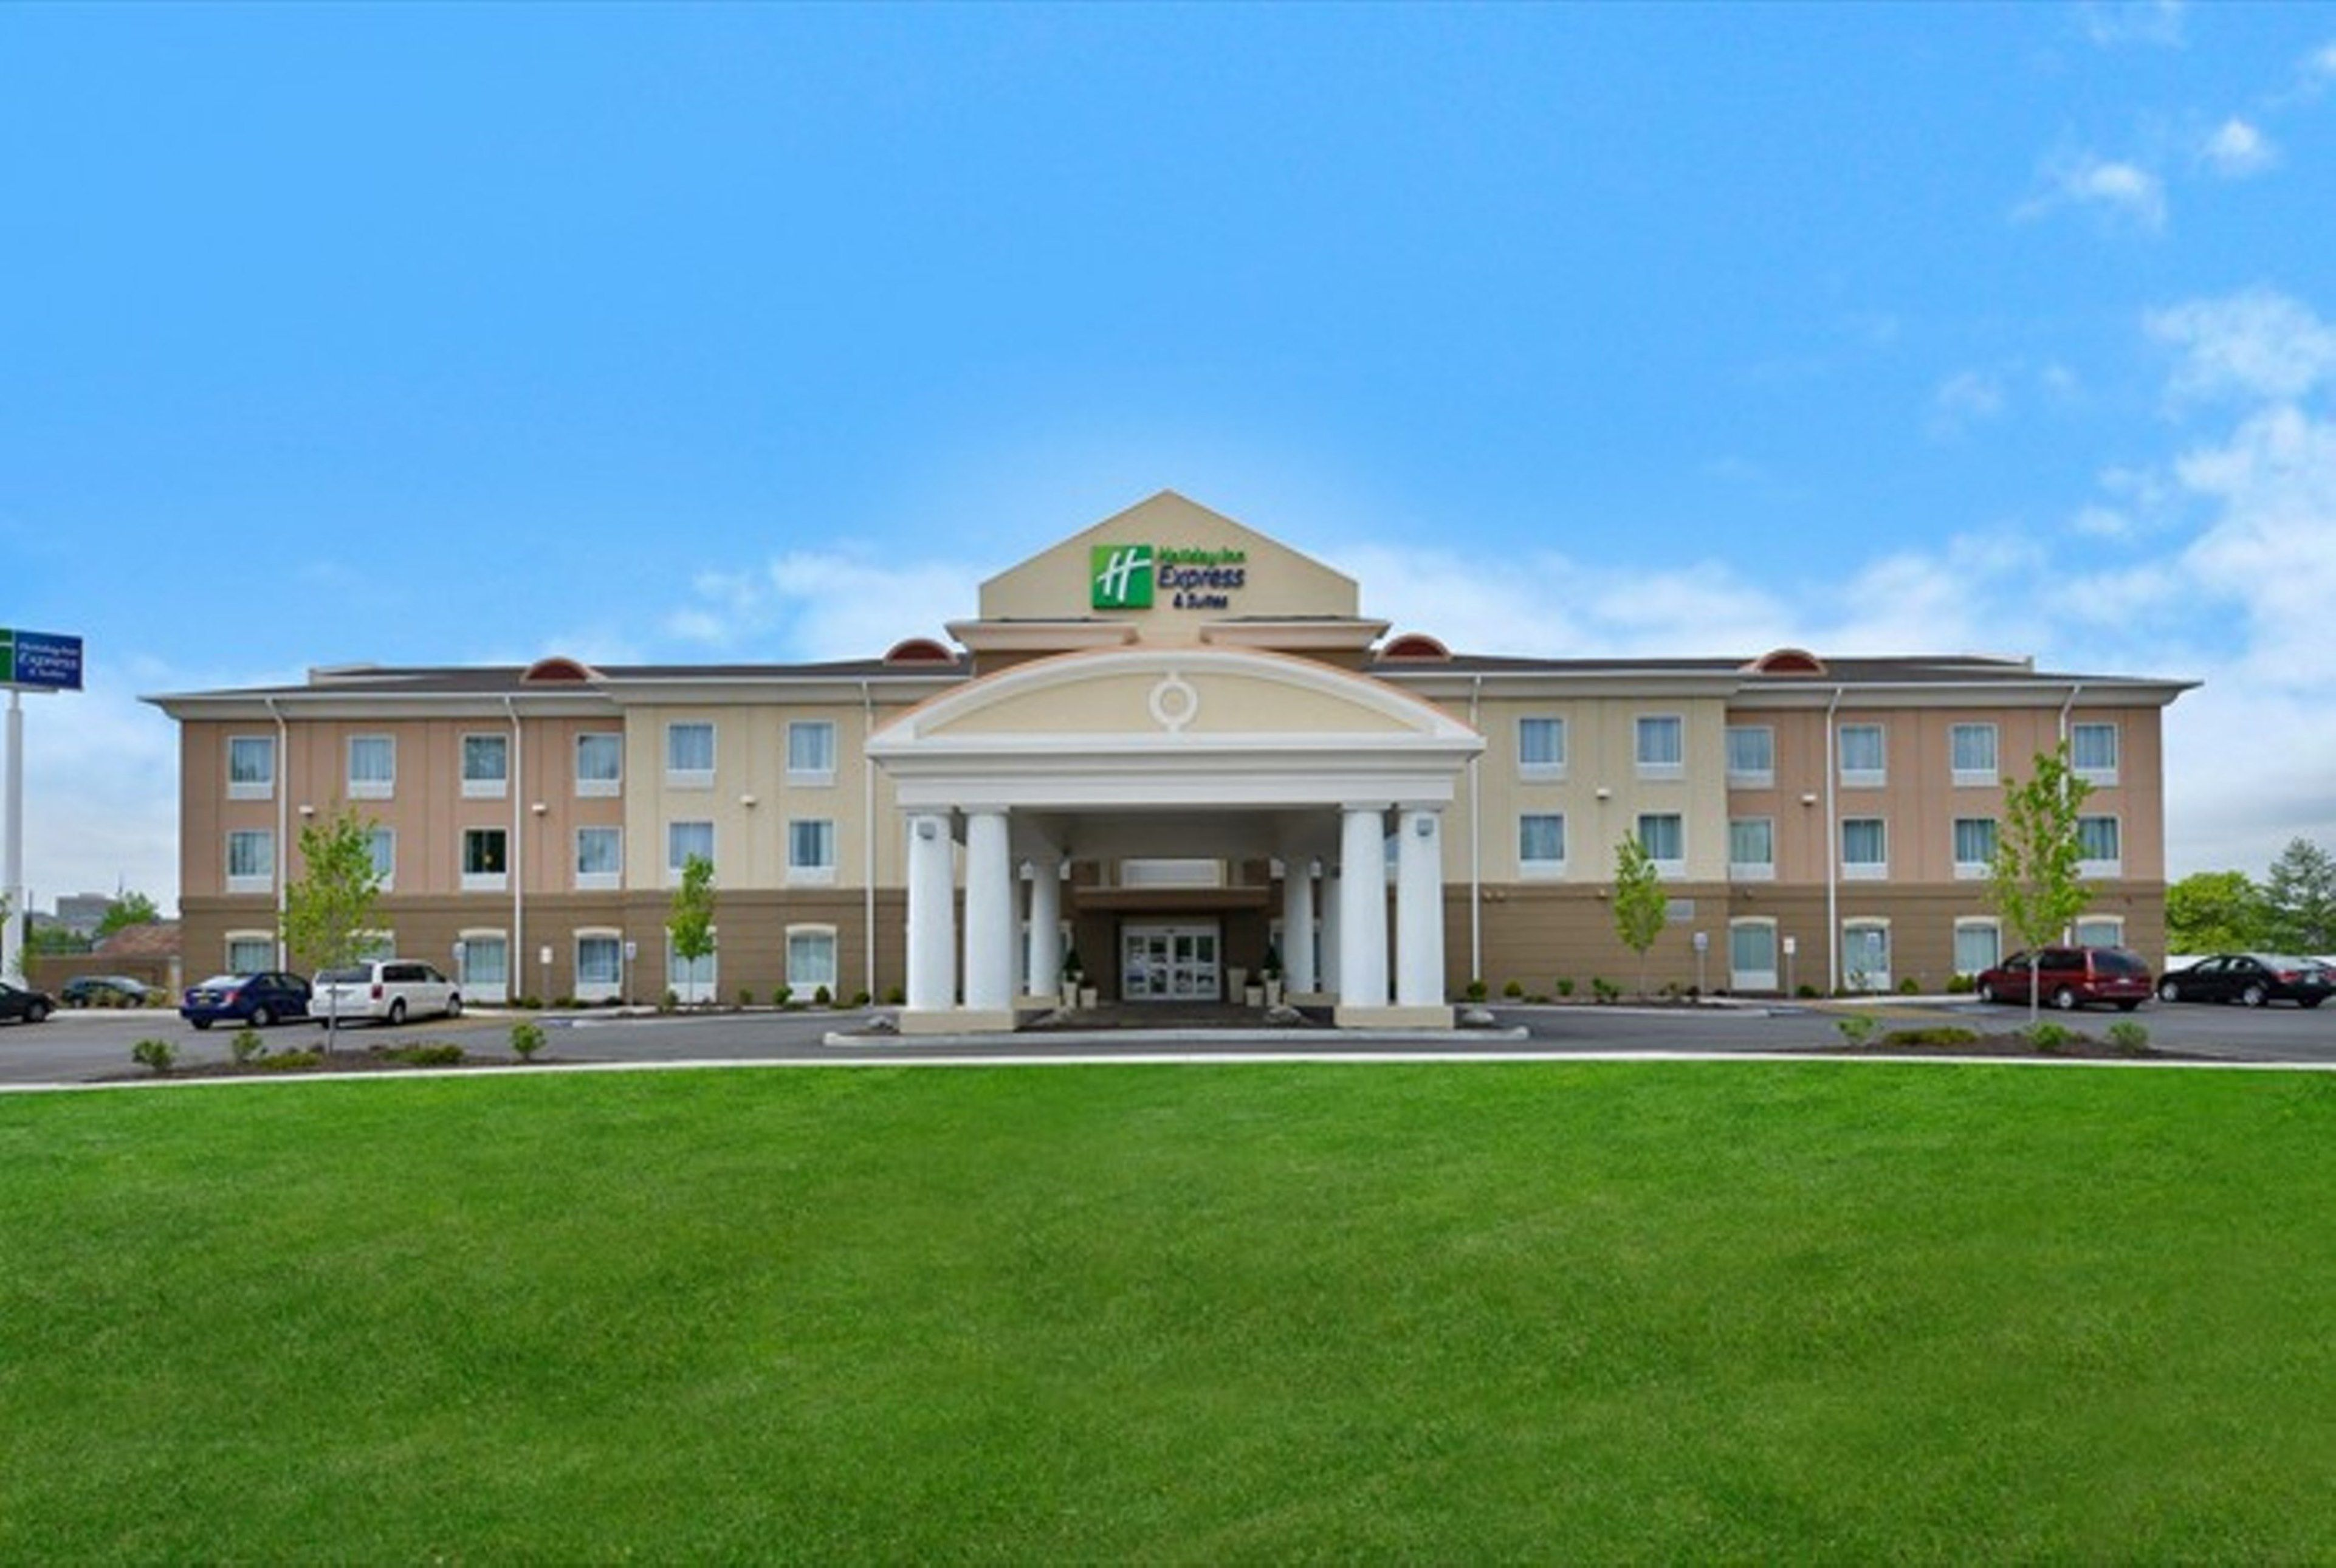 Holiday Inn Express Suites Urbandale Des Moines Urbandale Iowa Ia